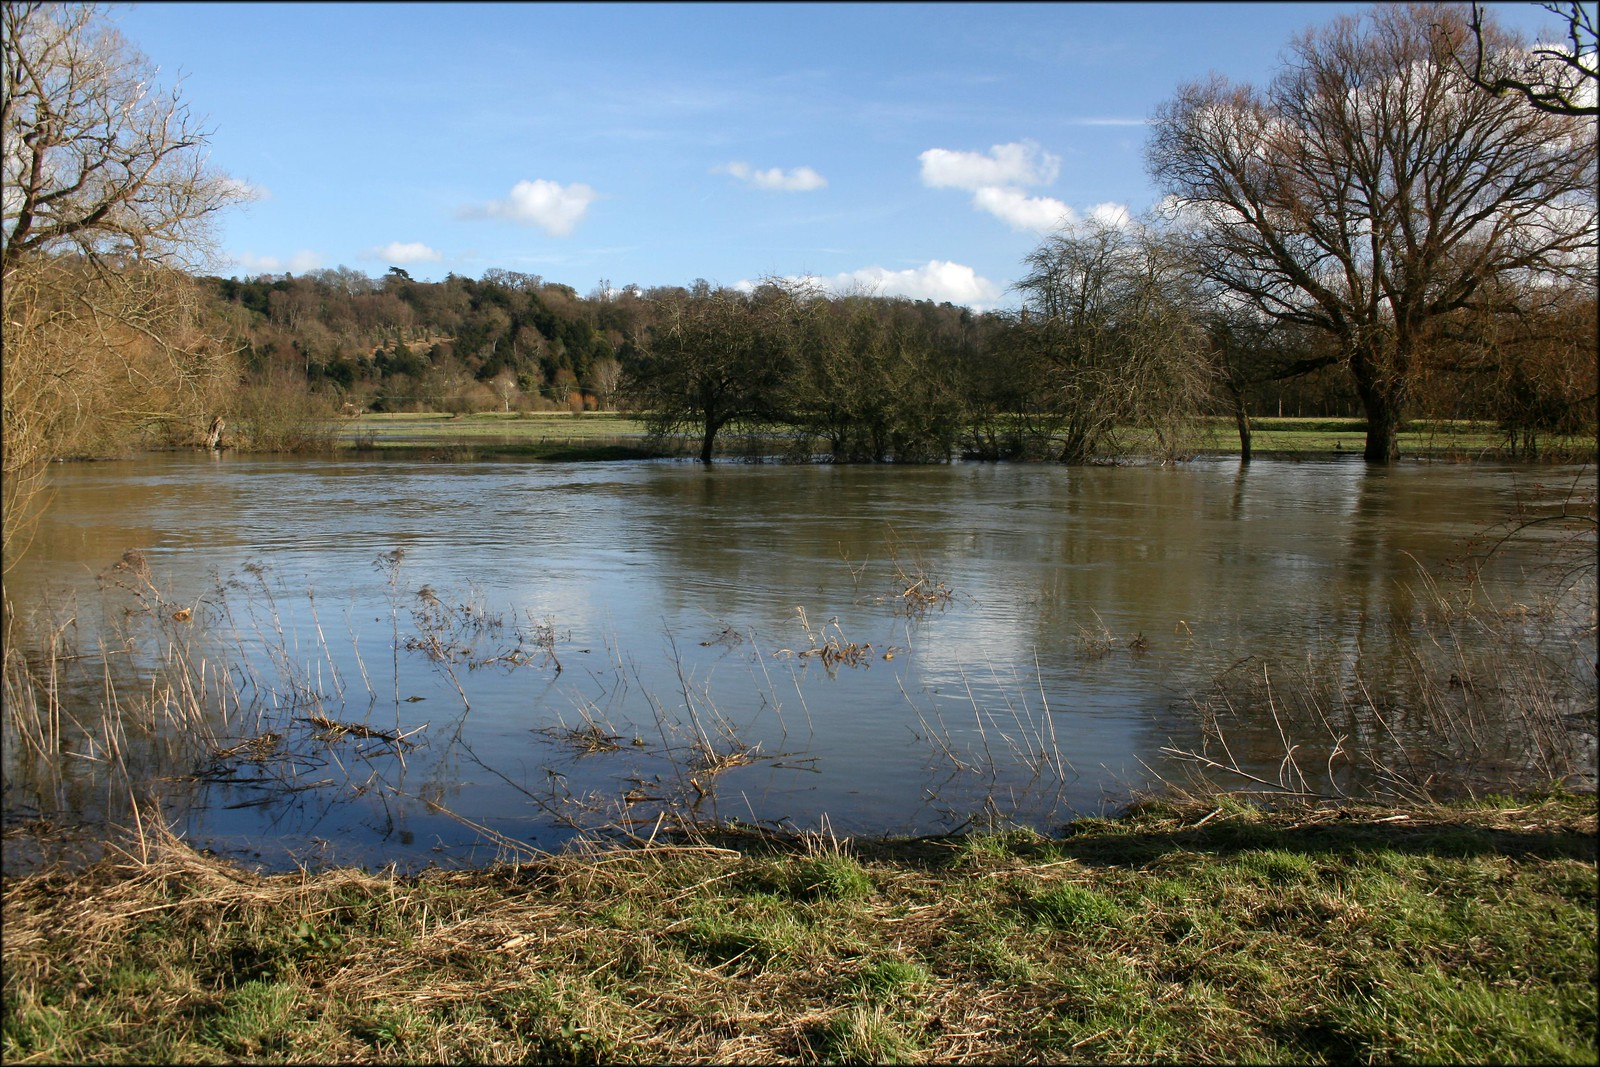 The Thames near Cookham